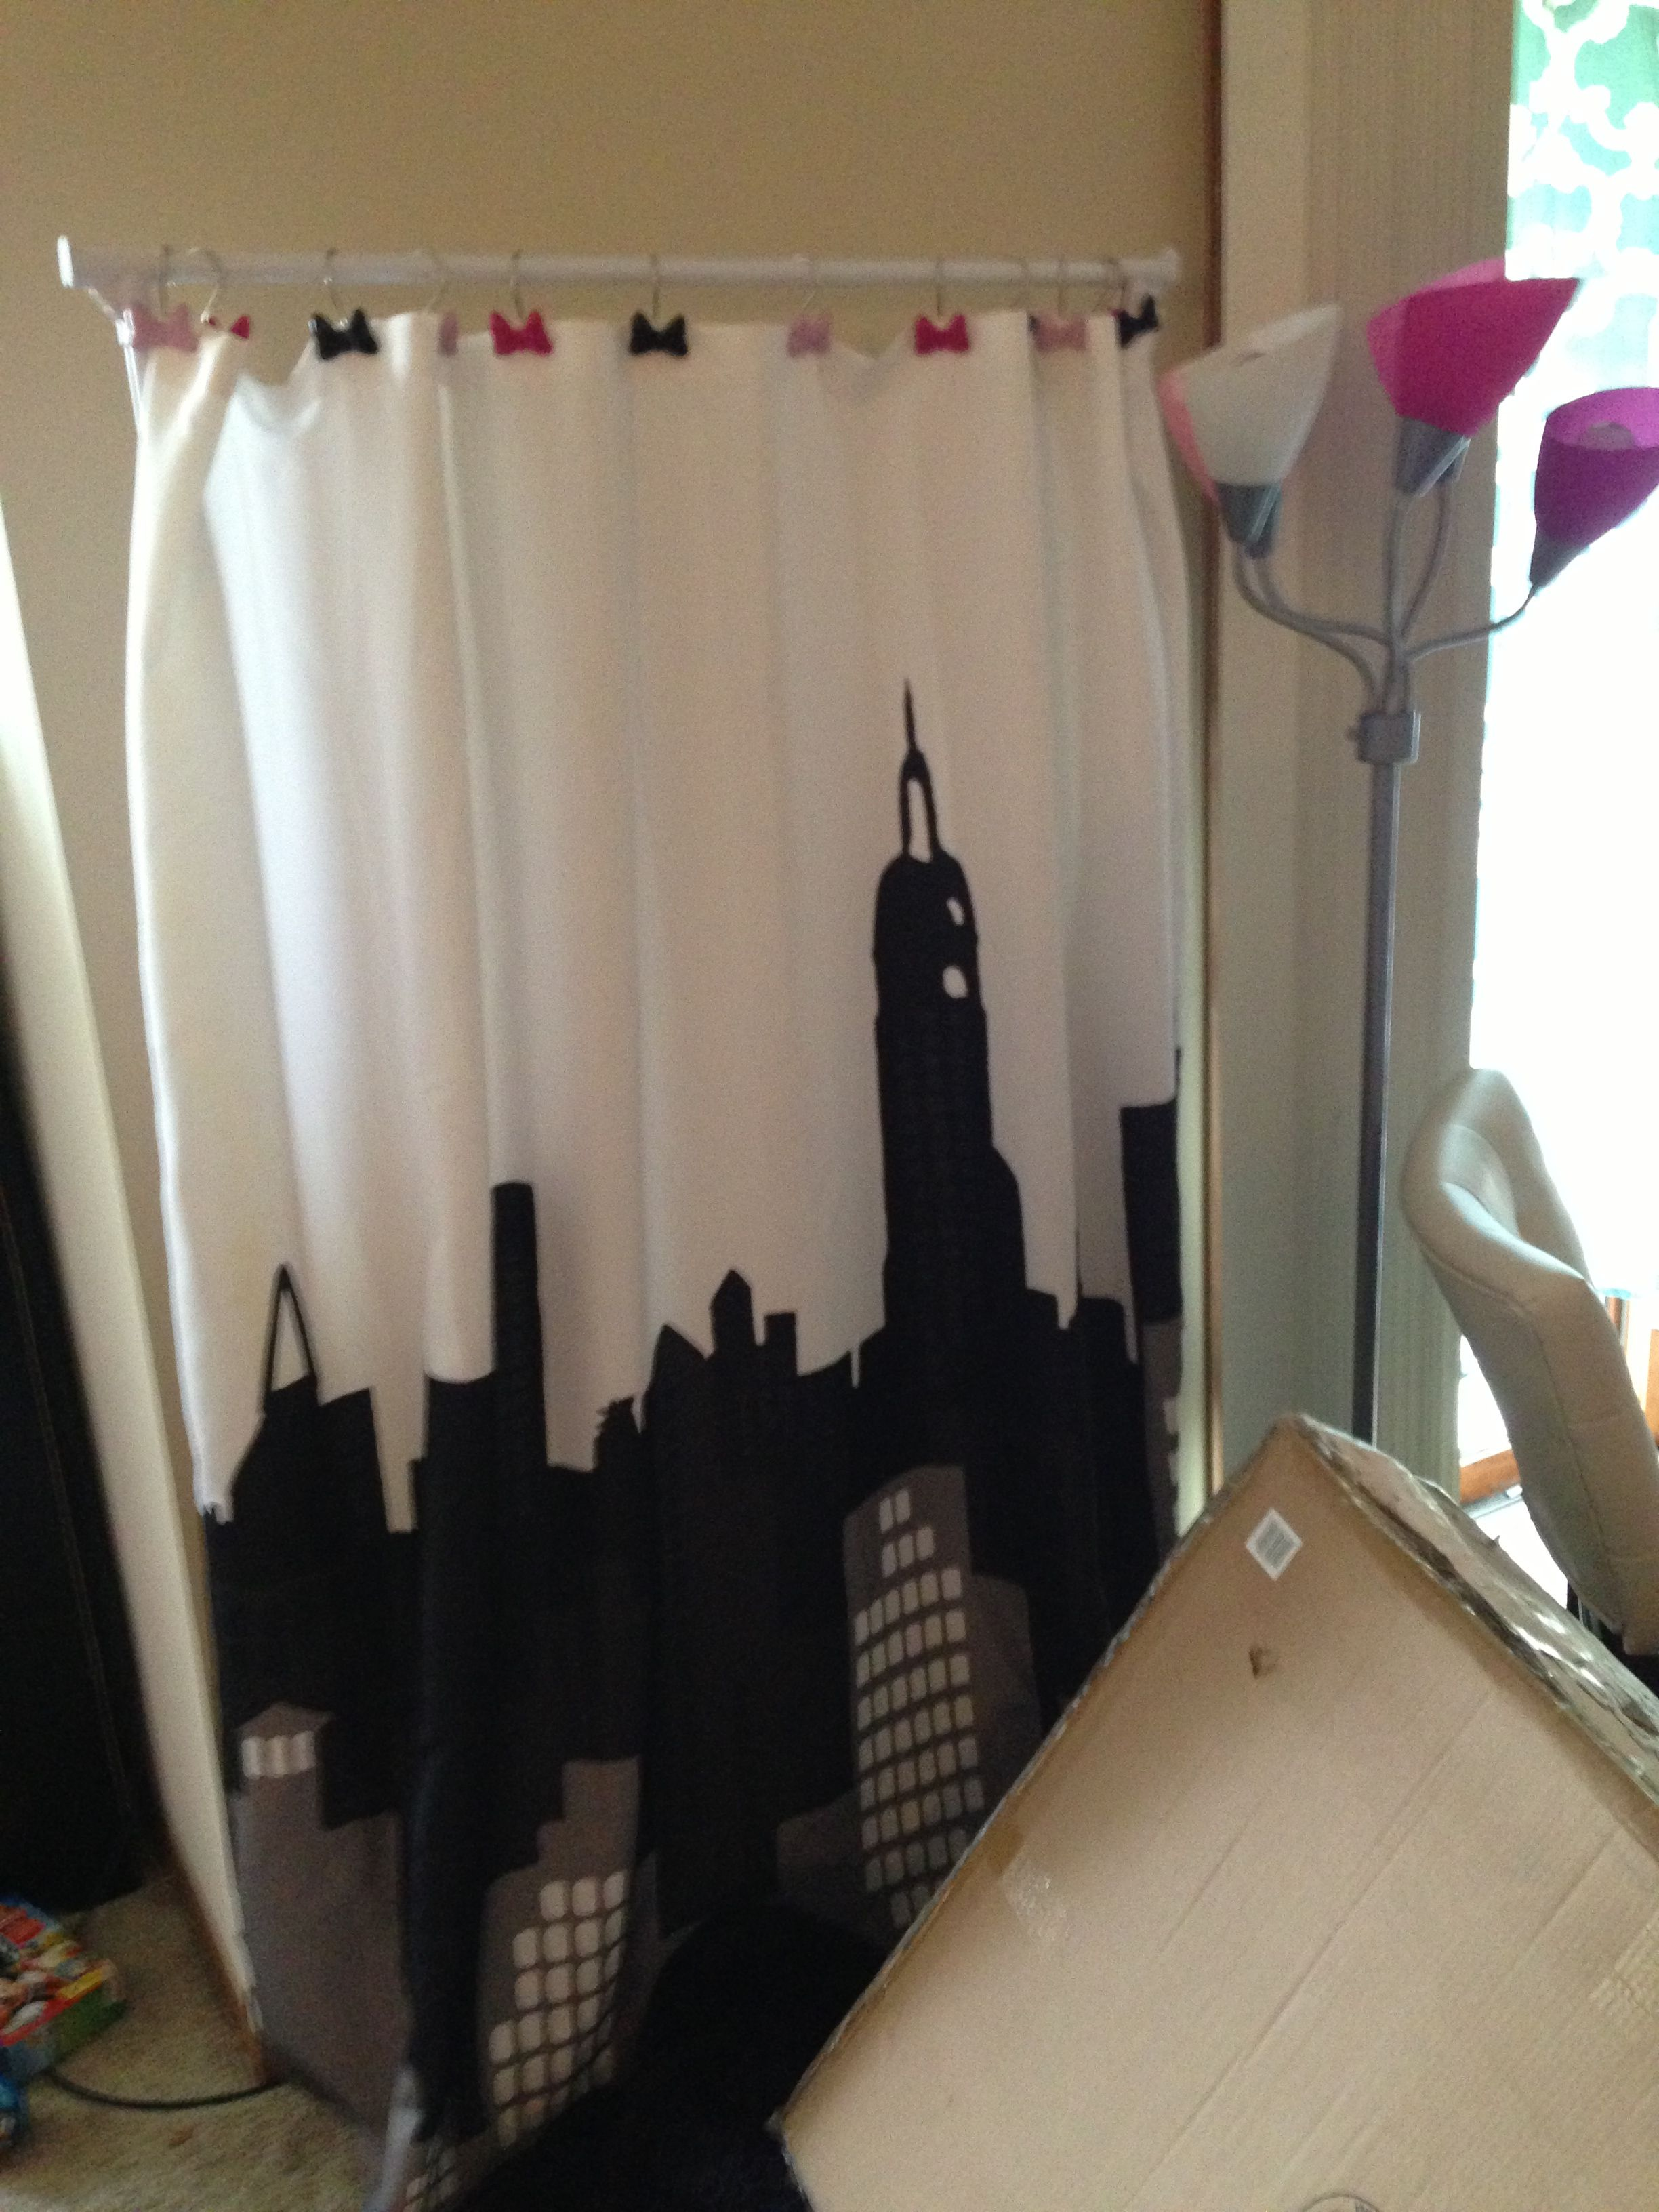 Genial A Shower Curtain Hung On A Free Standing Closet Rack. Adds 3d Art To Your  Space!!